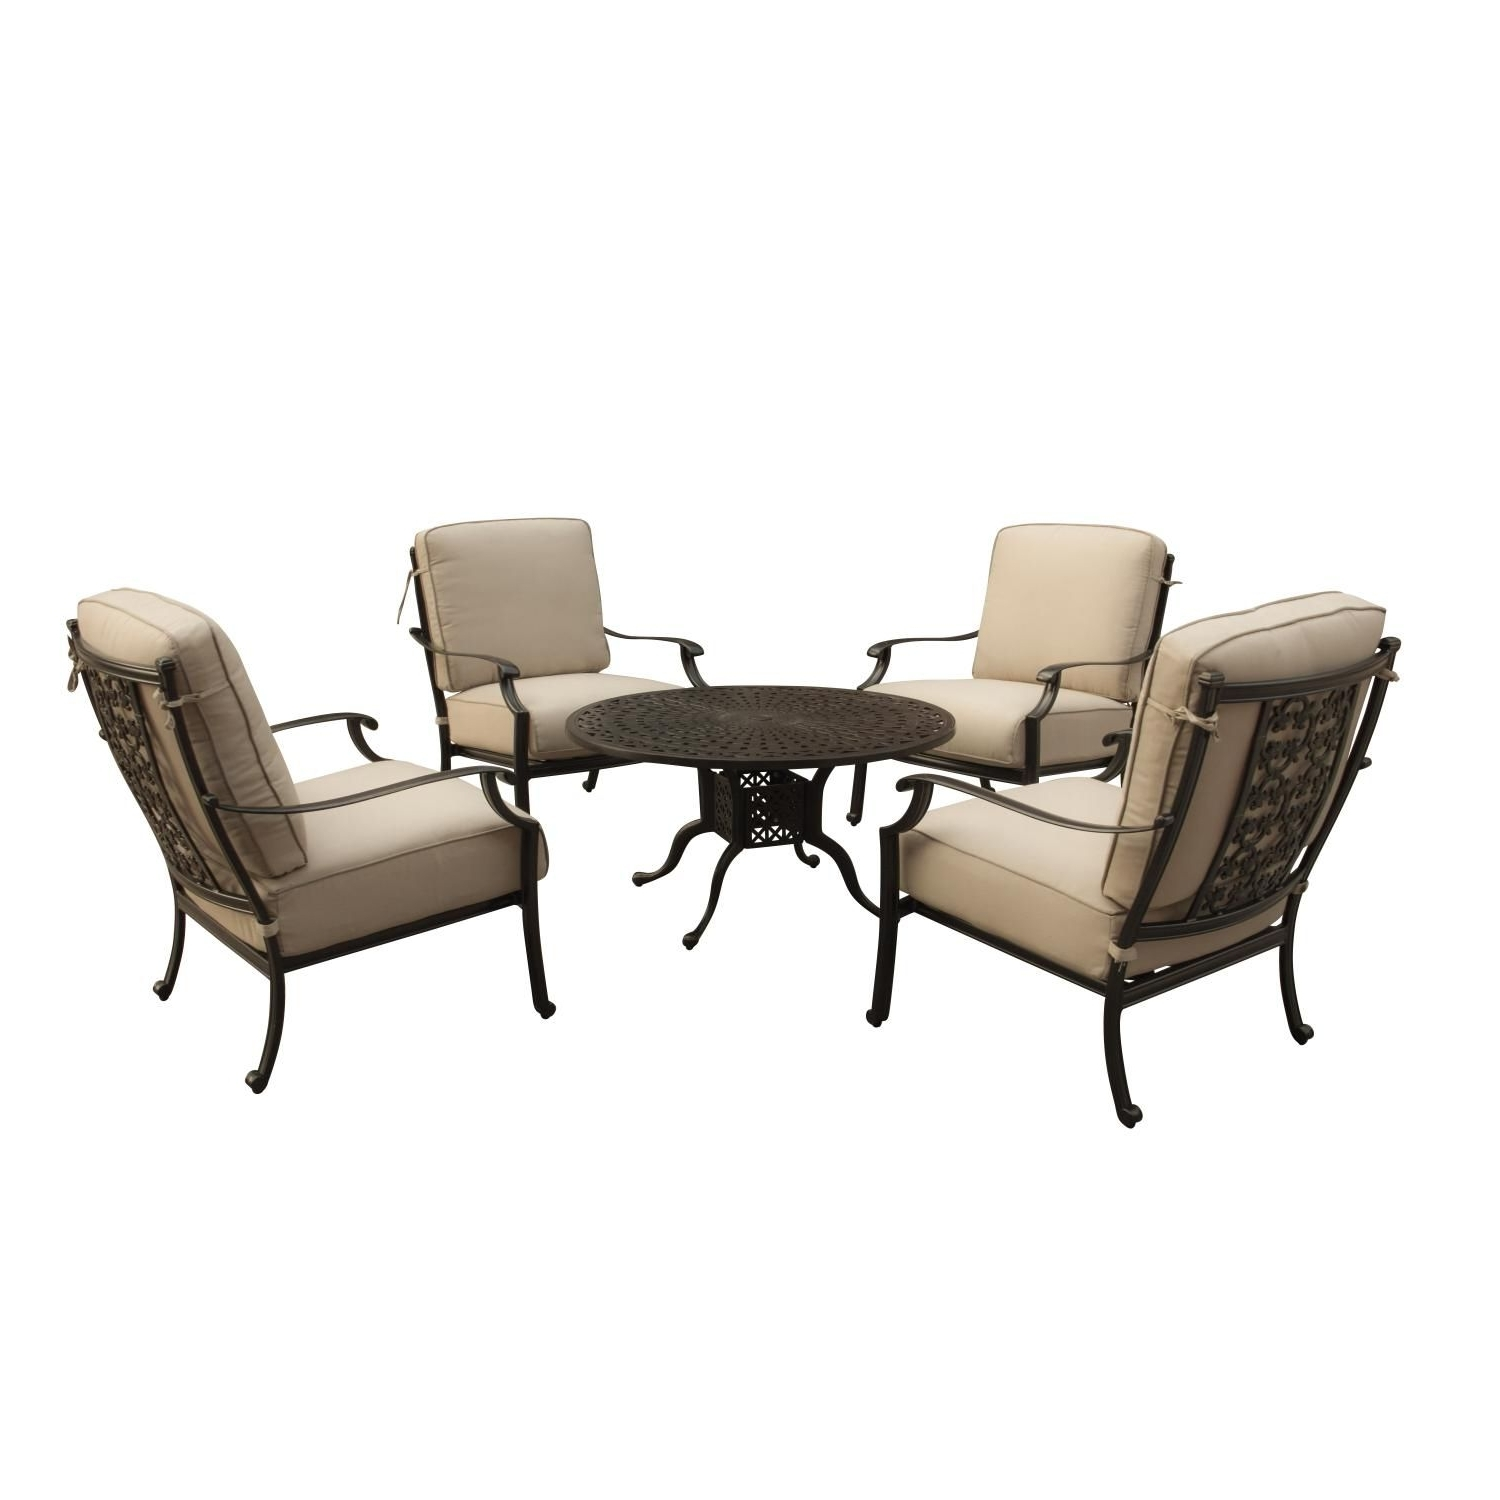 Patio Conversation Sets With Sunbrella Cushions Inside Well Known Carondelet 5 Piece Cast Aluminum Patio Conversation Set W/ Sunbrella (View 12 of 20)